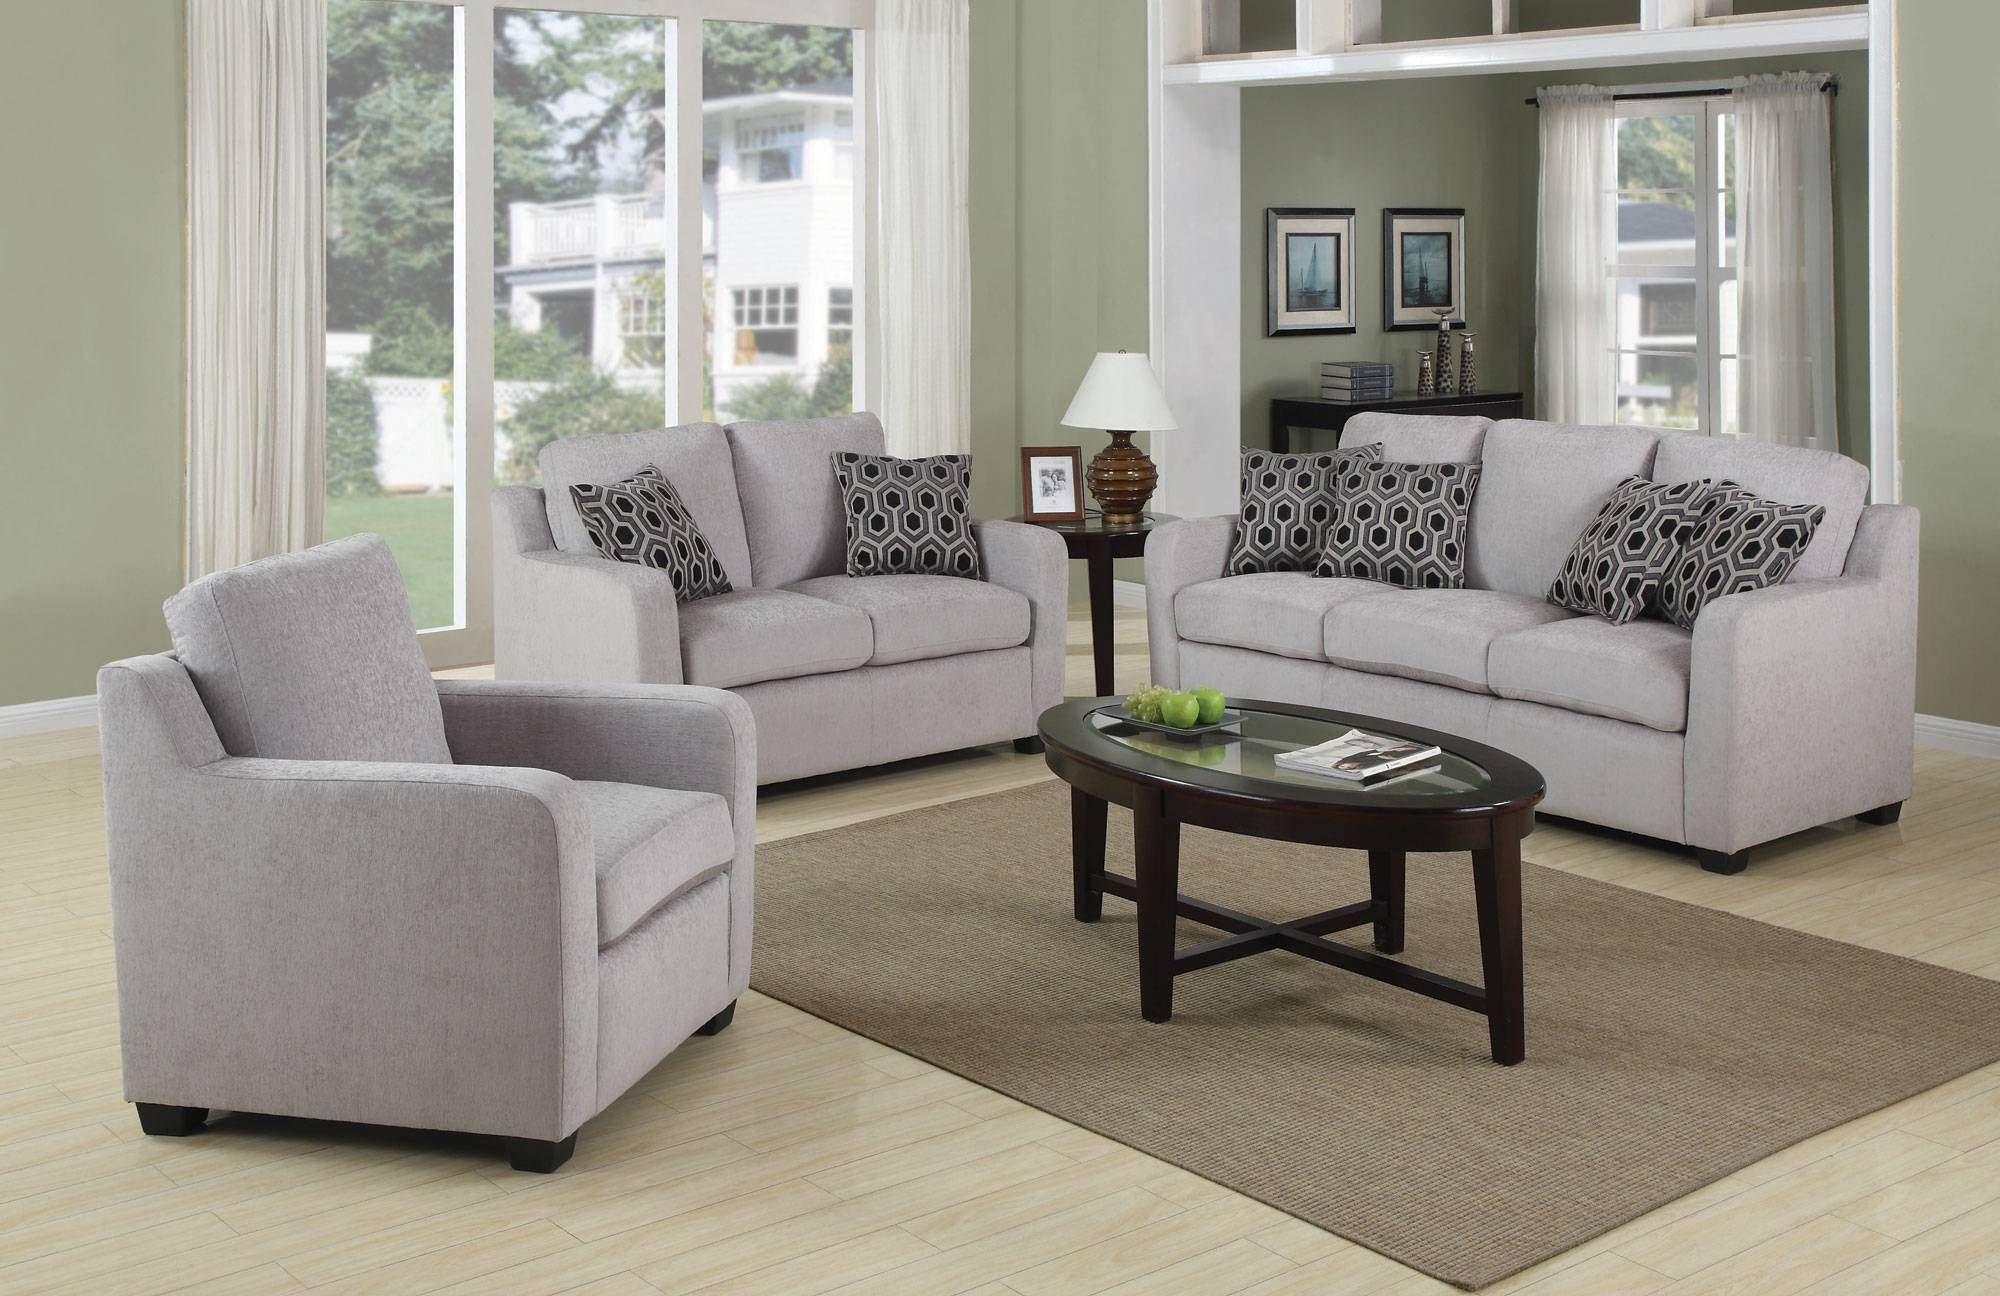 Cheap Living Room Sets Houston Sectional Sofas Under 300 Living Throughout  Cheap Sofas Houston Part 89